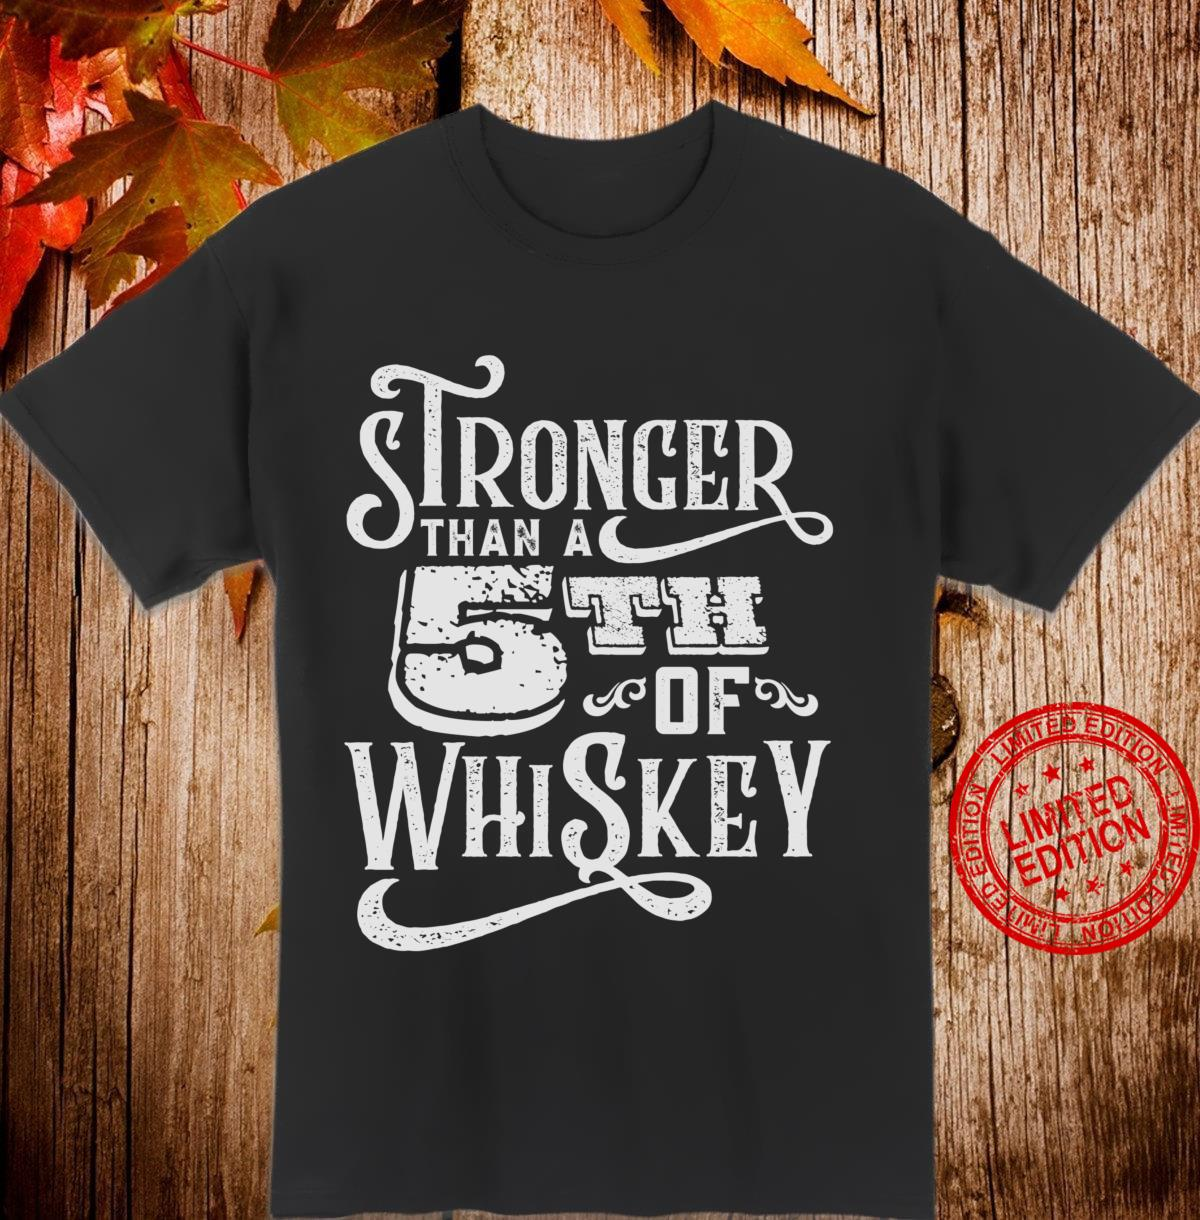 Stronger Than A Fifth of Whiskey Motivational Shirt